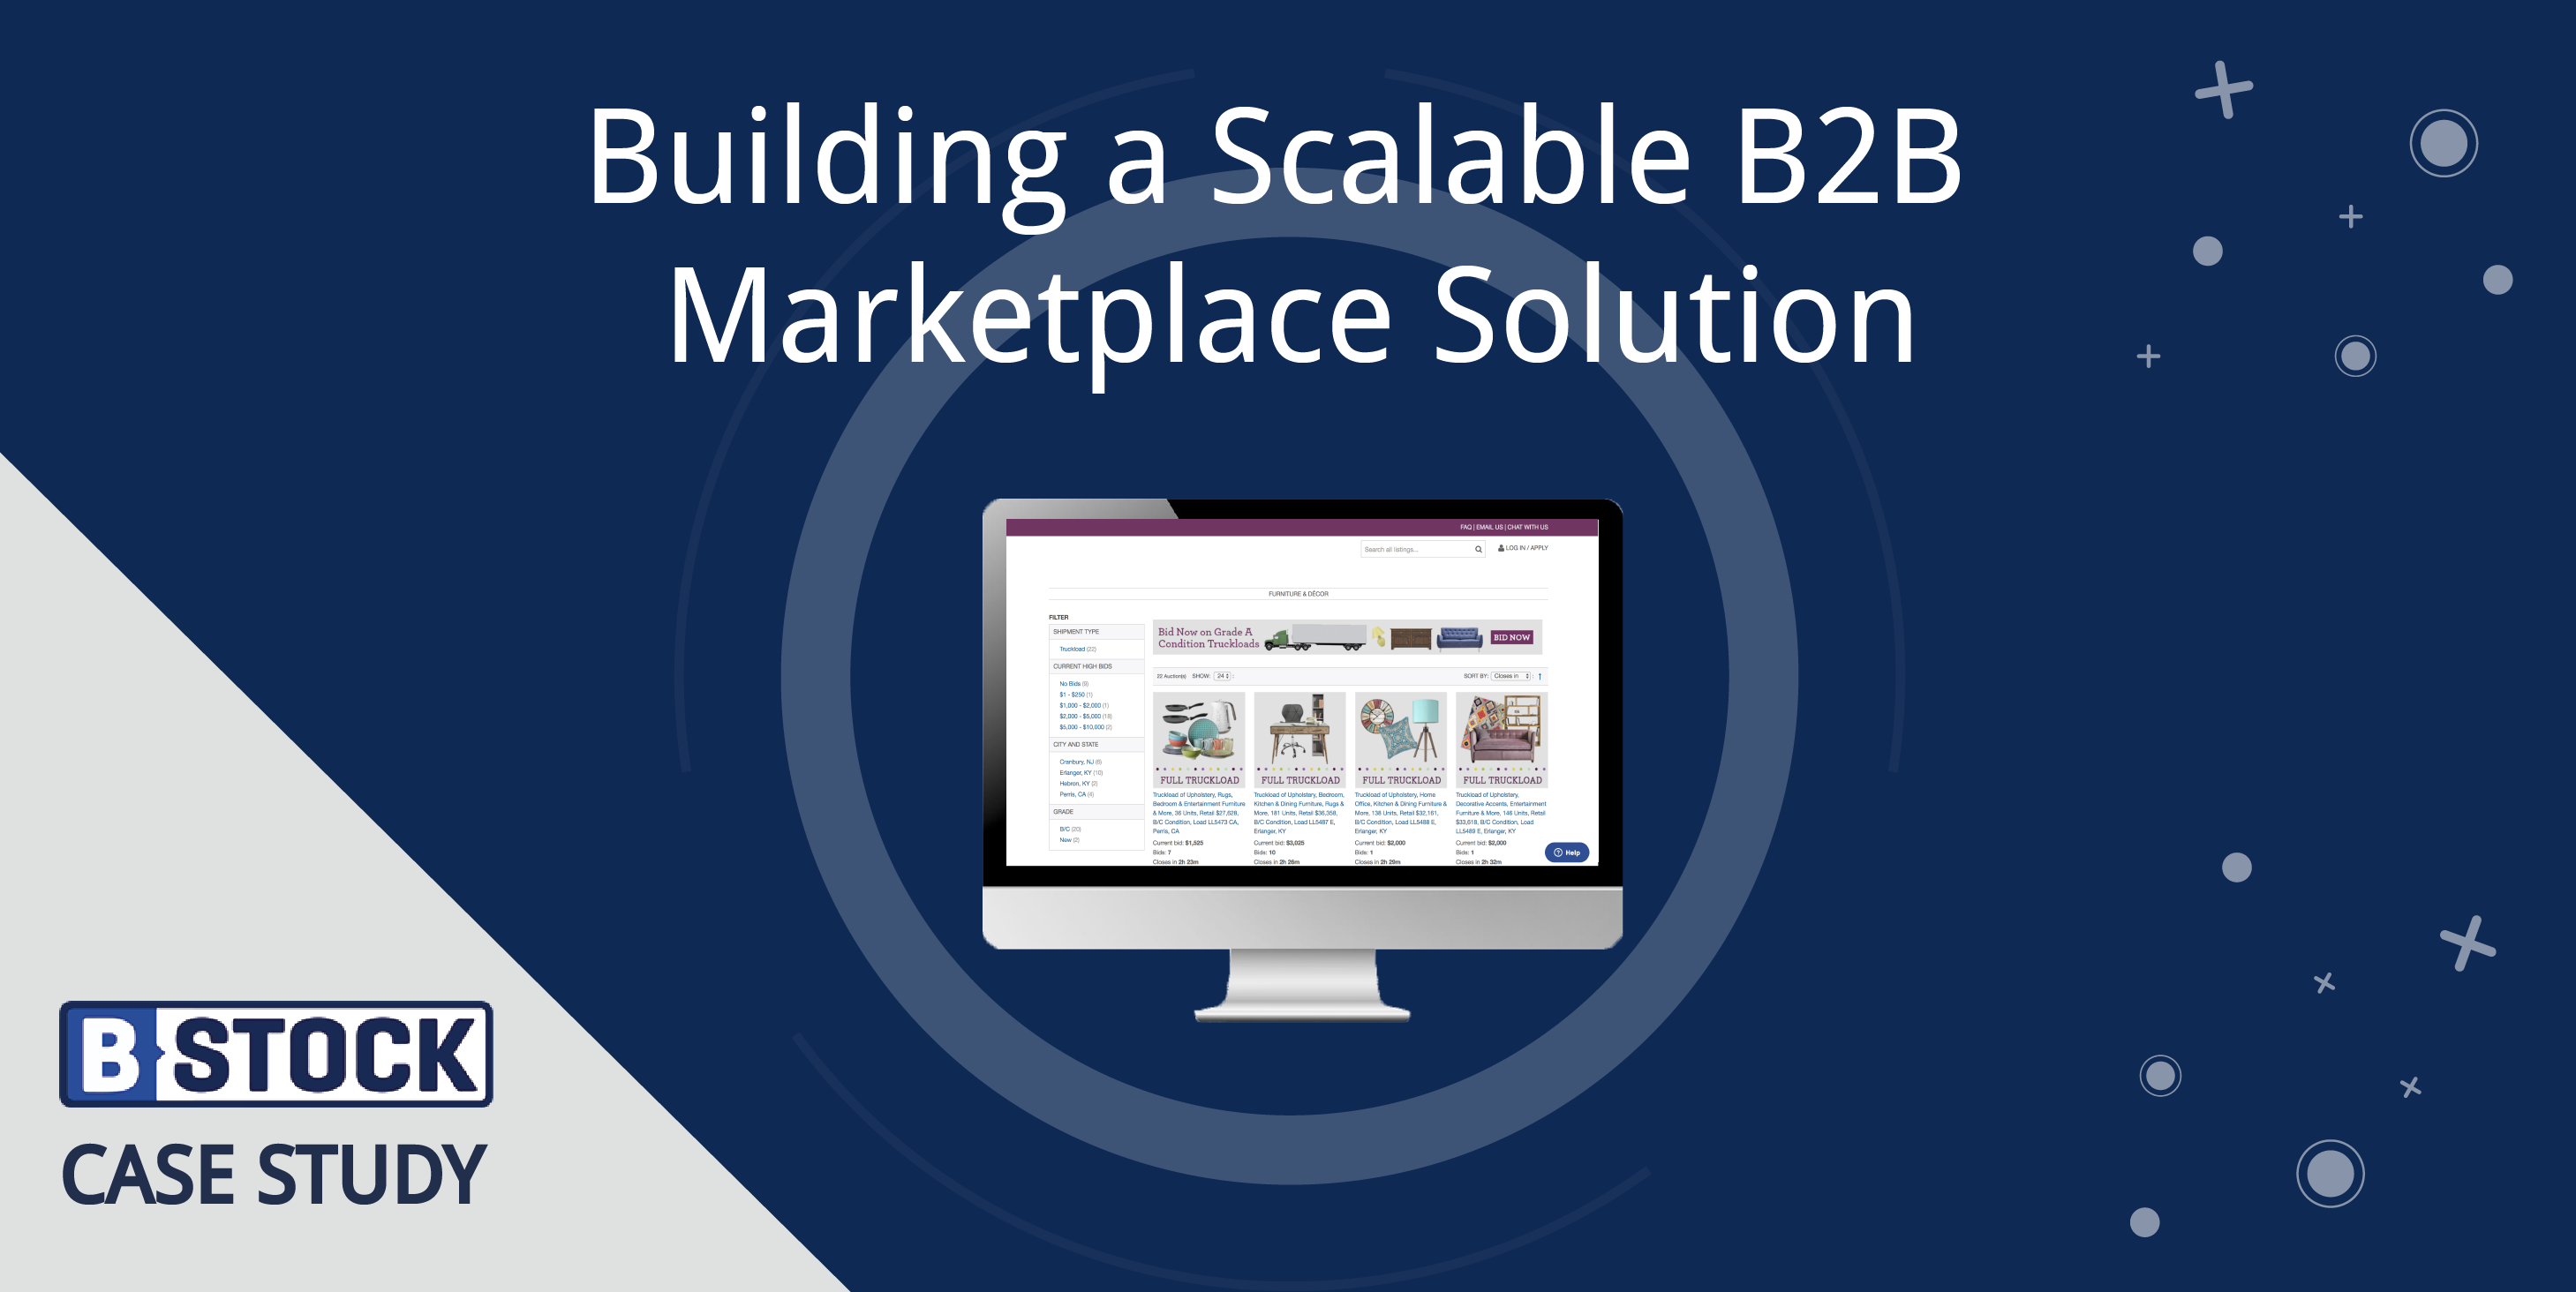 Case Study: Building a Scalable B2B Marketplace Solution